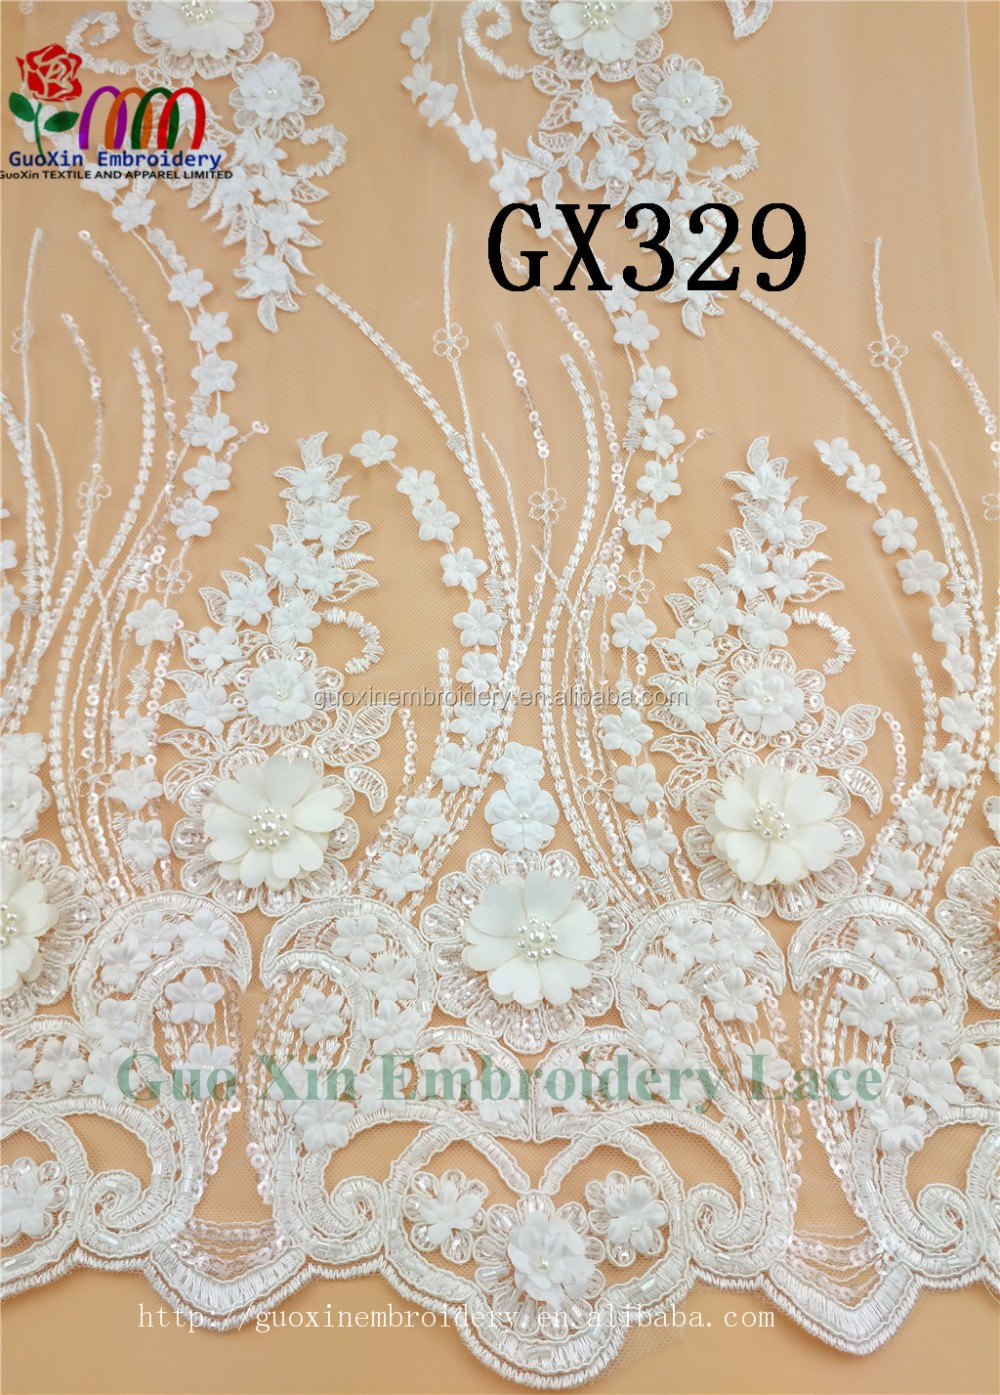 3d Ribbon Embroidery Net Fabric Hand Embroidery Net Fabric Beautiful Fabric For Dresses Buy 3d Ribbon Embroidery Net Fabric Hand Embroidery Net Fabric Beautiful Fabric For Dresses Product On Alibaba Com